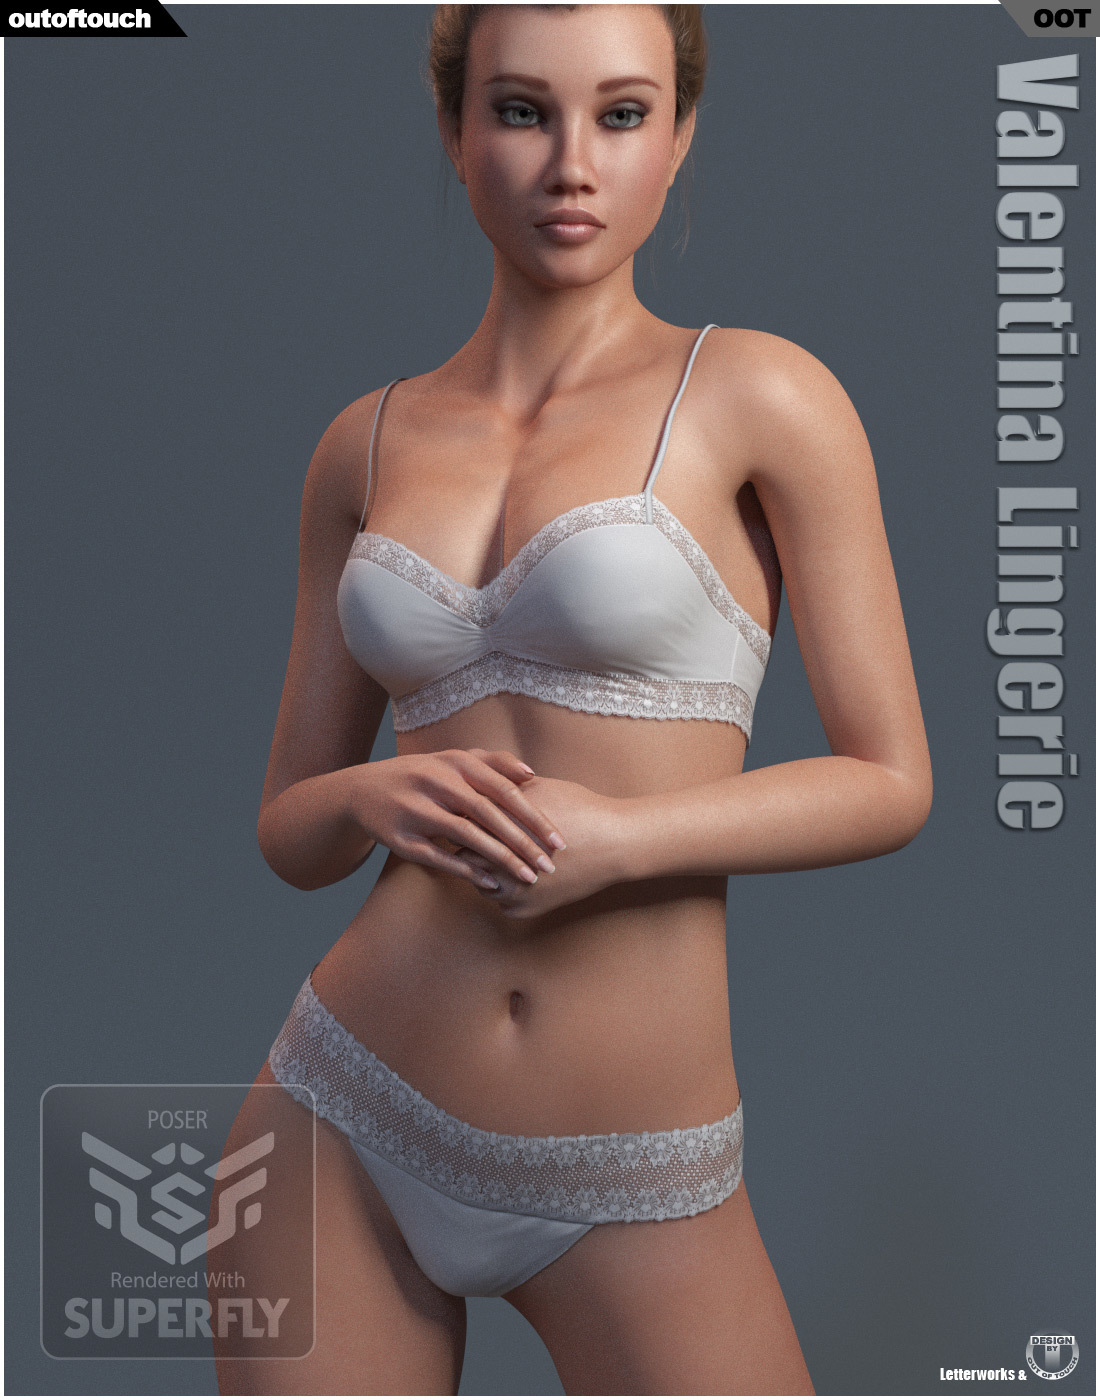 Valentina Lingerie for La Femme by outoftouch